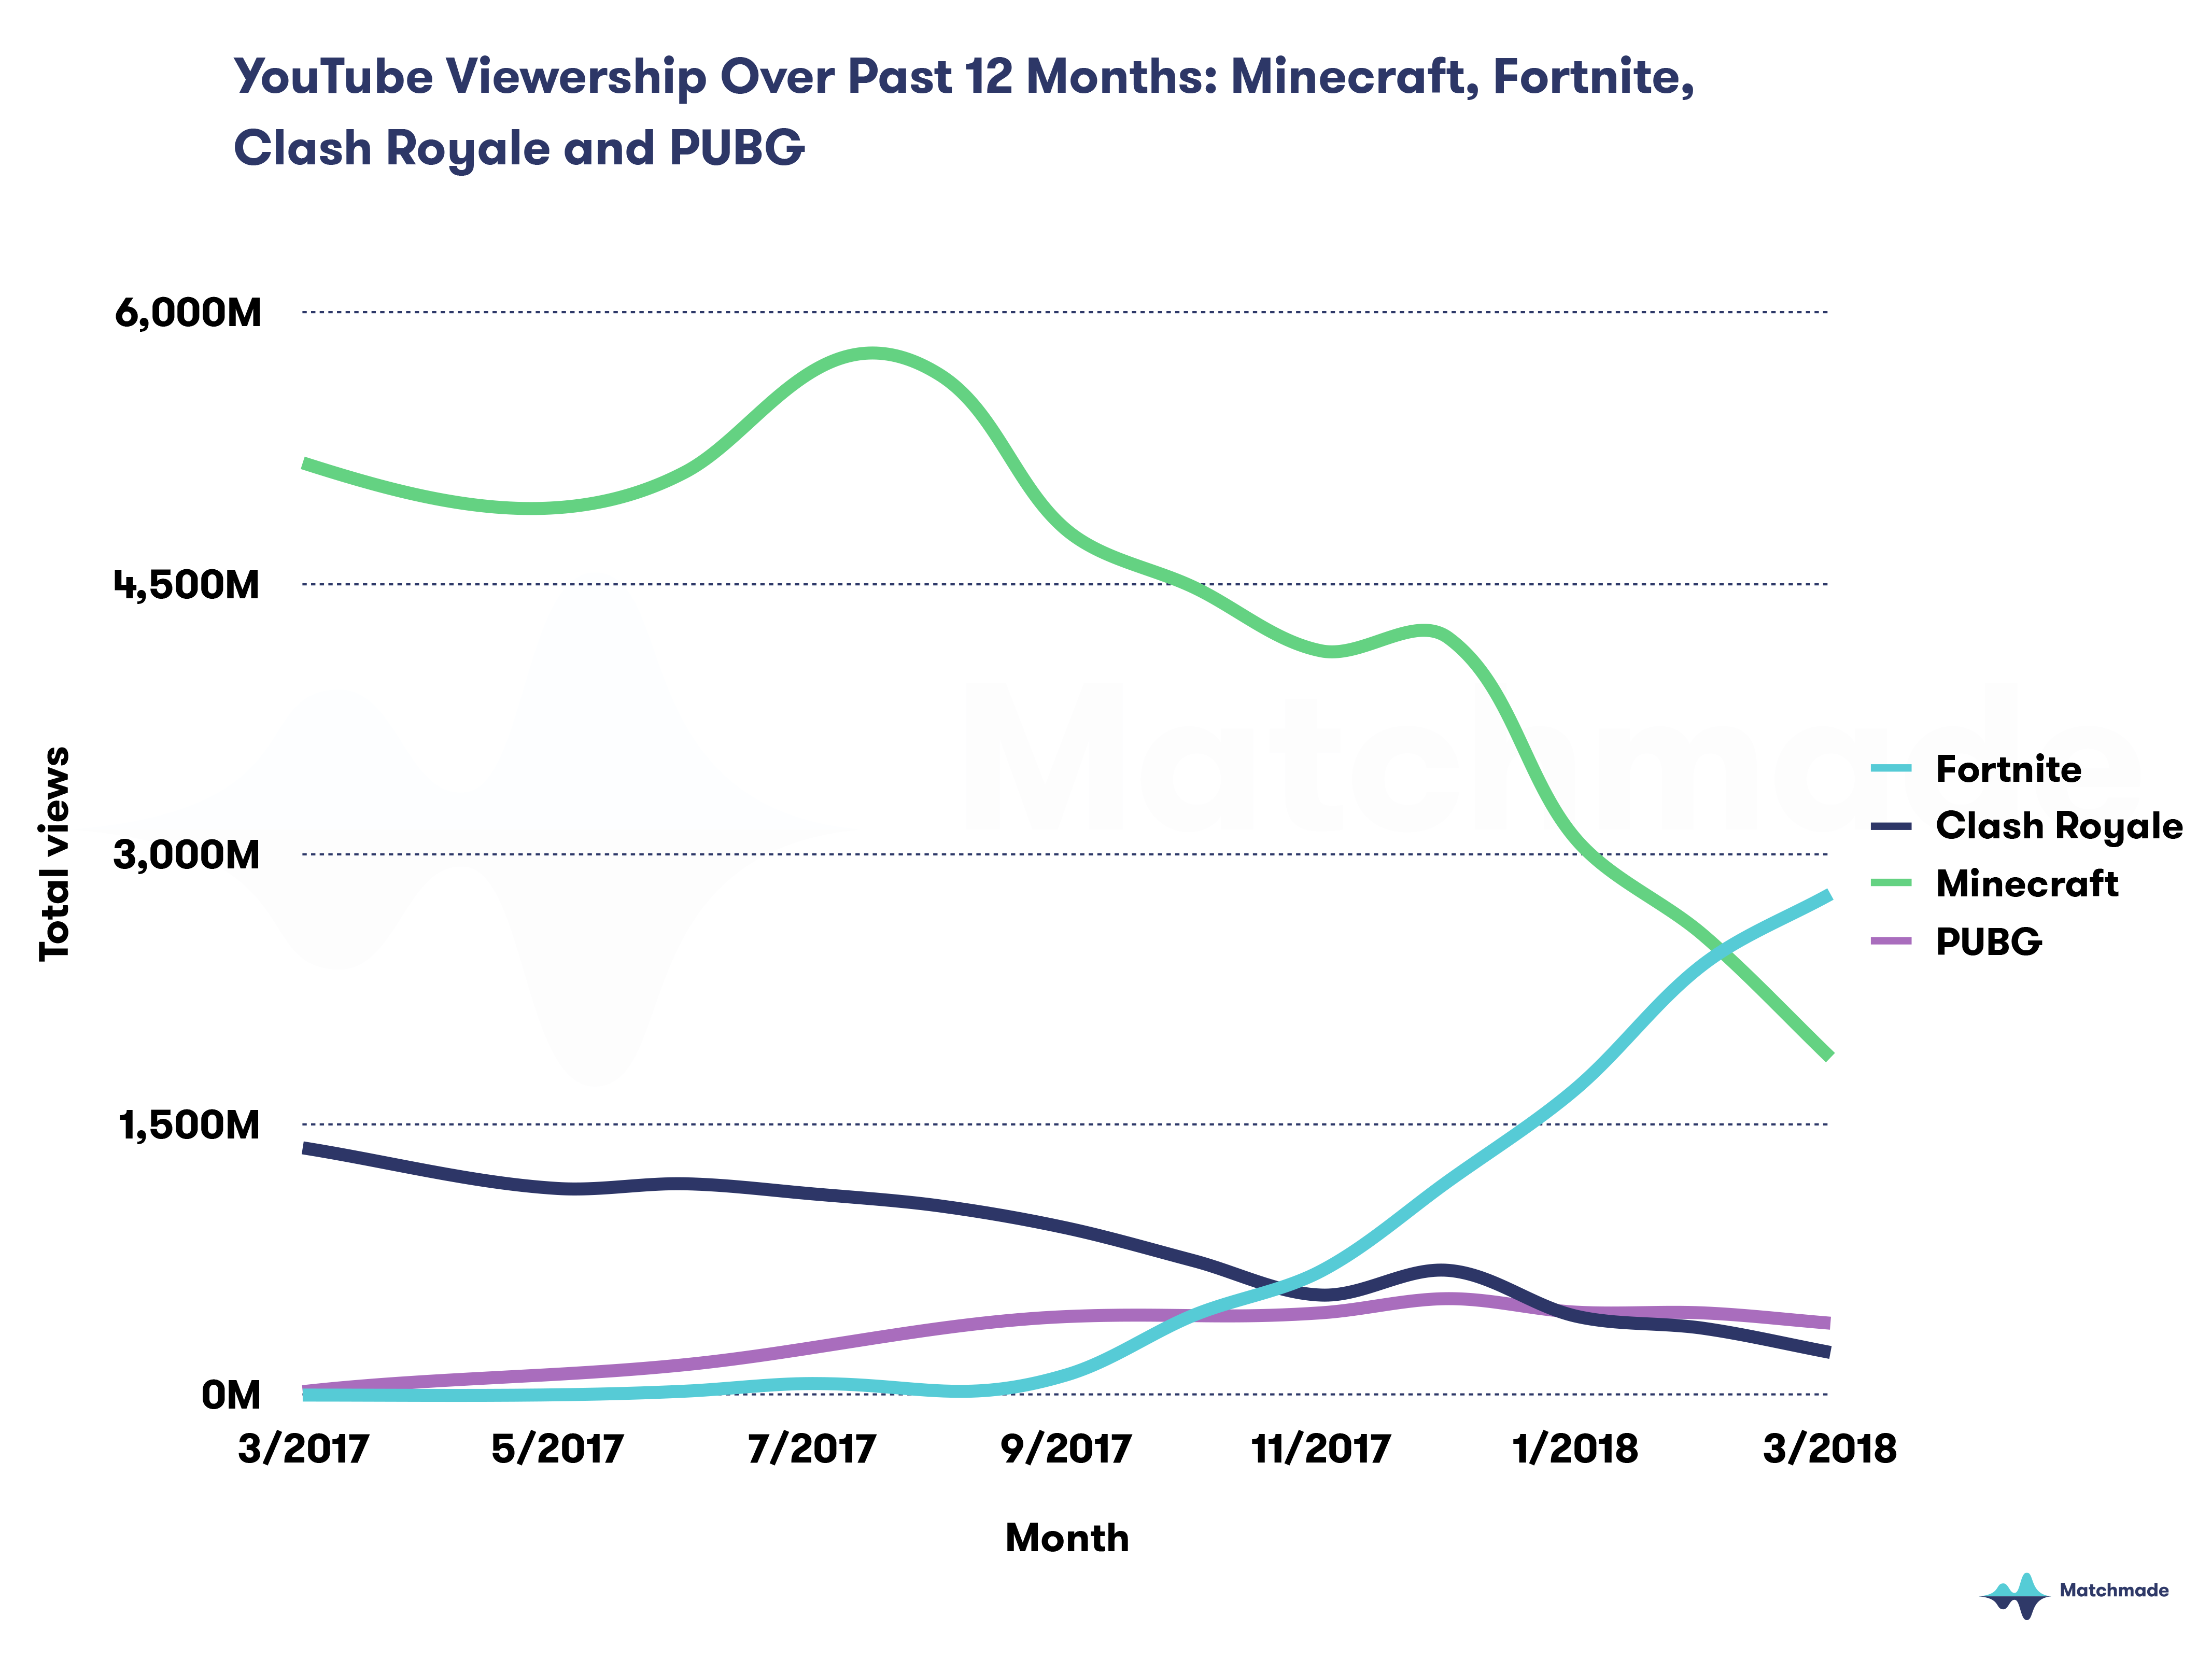 minecraft has been the dominant game on youtube for a long time but its views have been declining steadily since august 2017 - fortnite player base decline